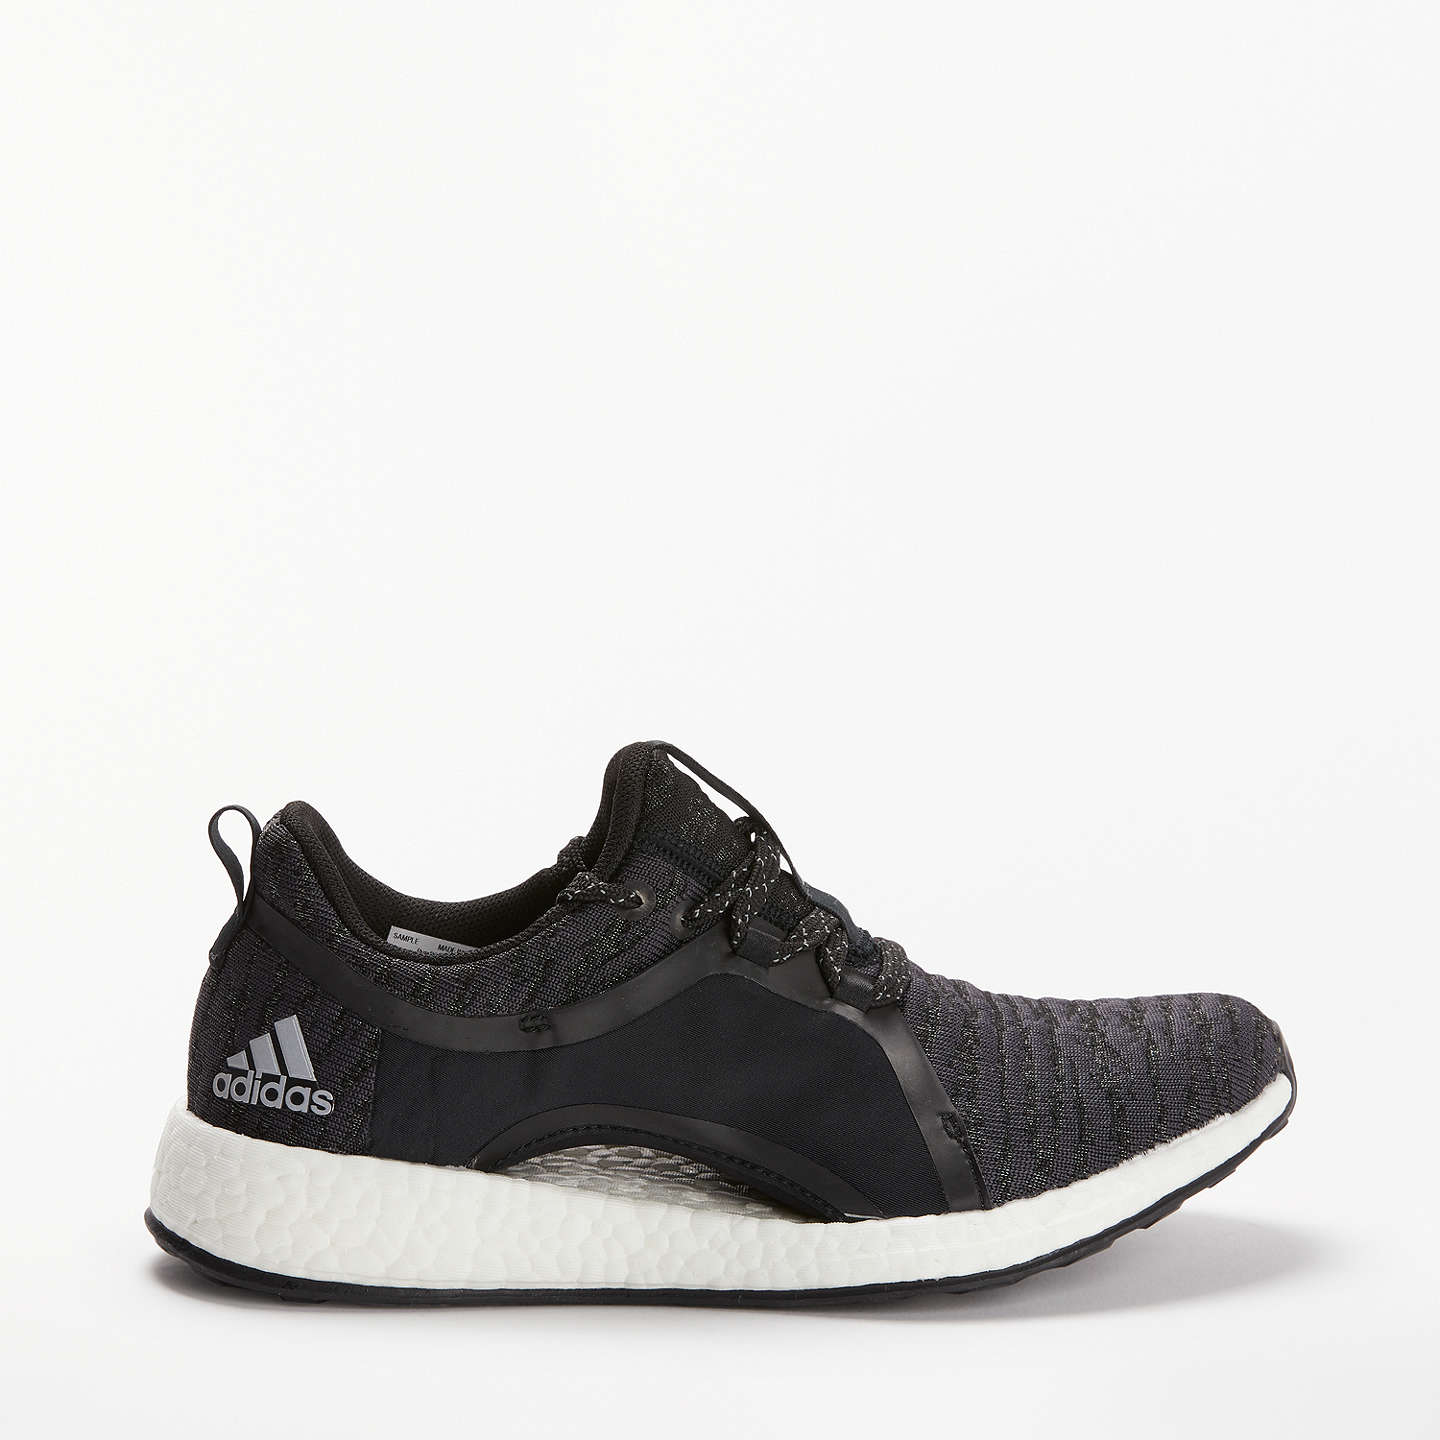 Buyadidas Pure Boost X Women's Running Shoes, Carbon Grey, 4 Online at  johnlewis.